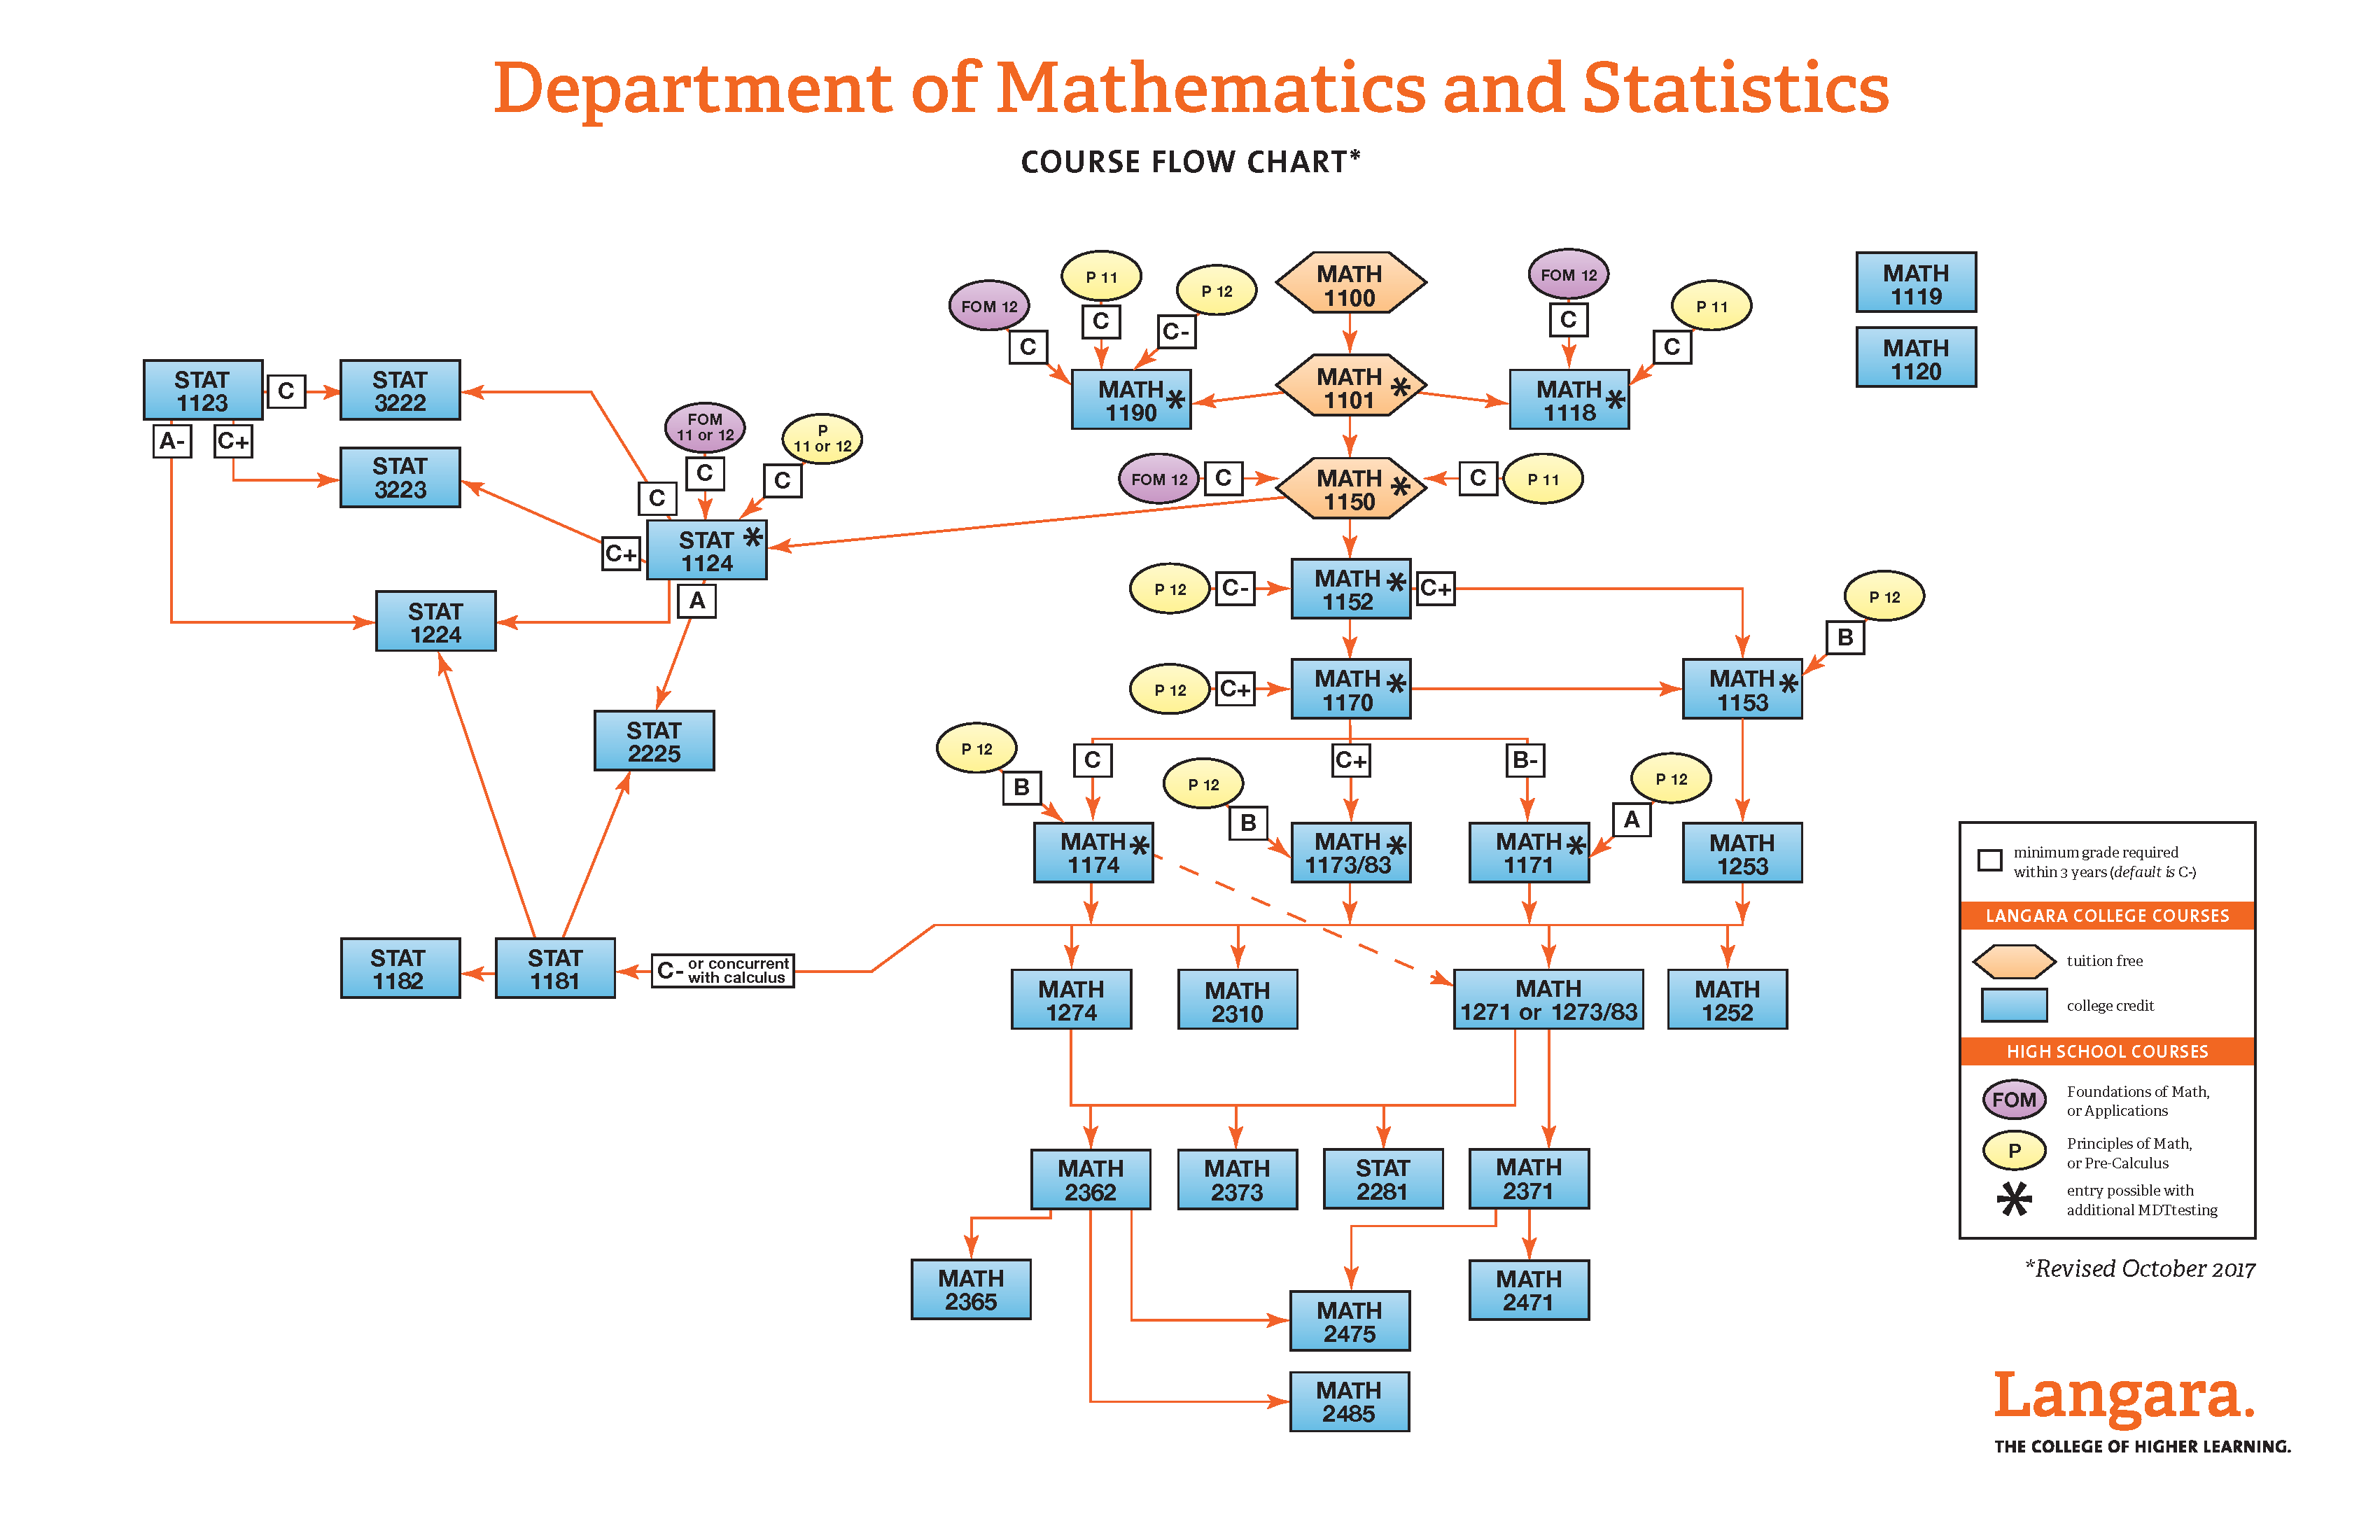 Langara  Departments: Mathematics & Statistics: Resources